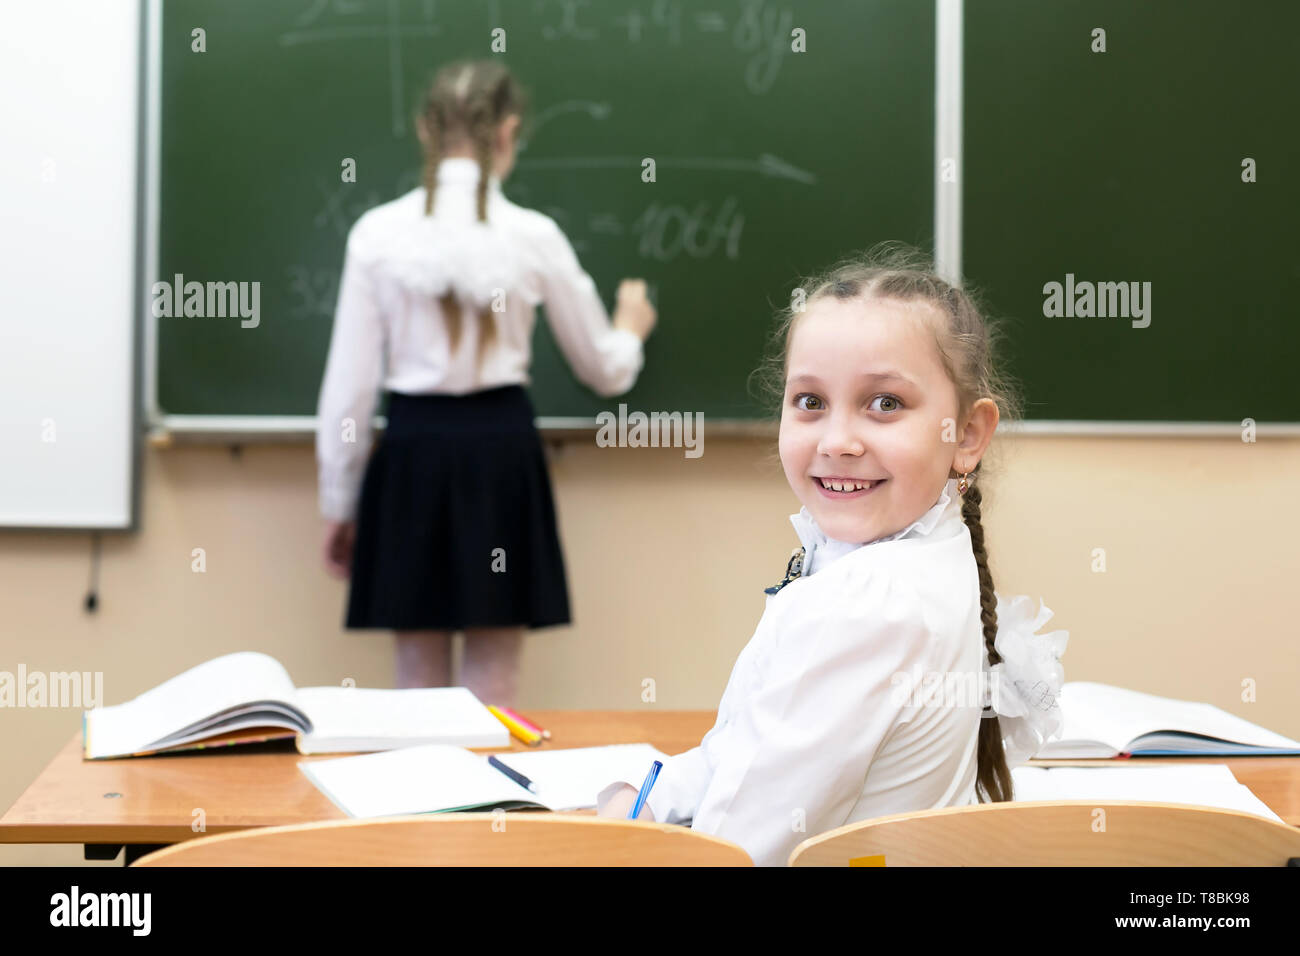 A schoolgirl girl looks into the camera while her friend, a classmate, answers the teacher at the blackboard - Stock Image